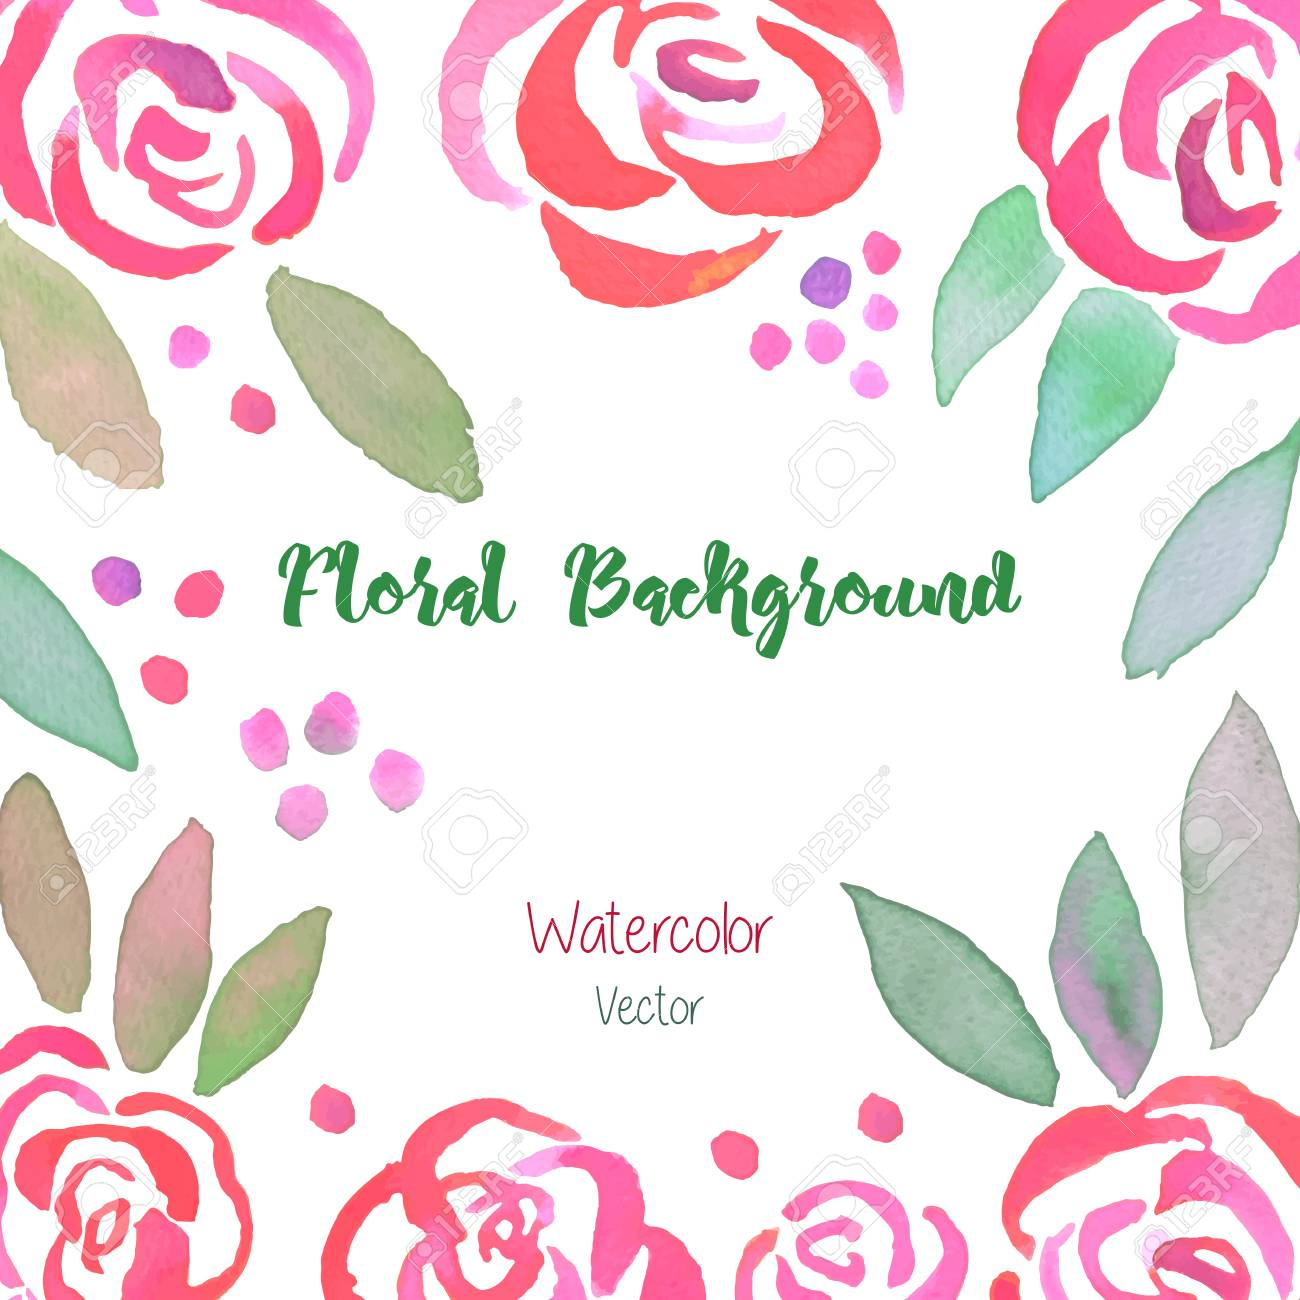 invitation card with hand made watercolor pastel vintage roses royalty free cliparts vectors and stock illustration image 62044773